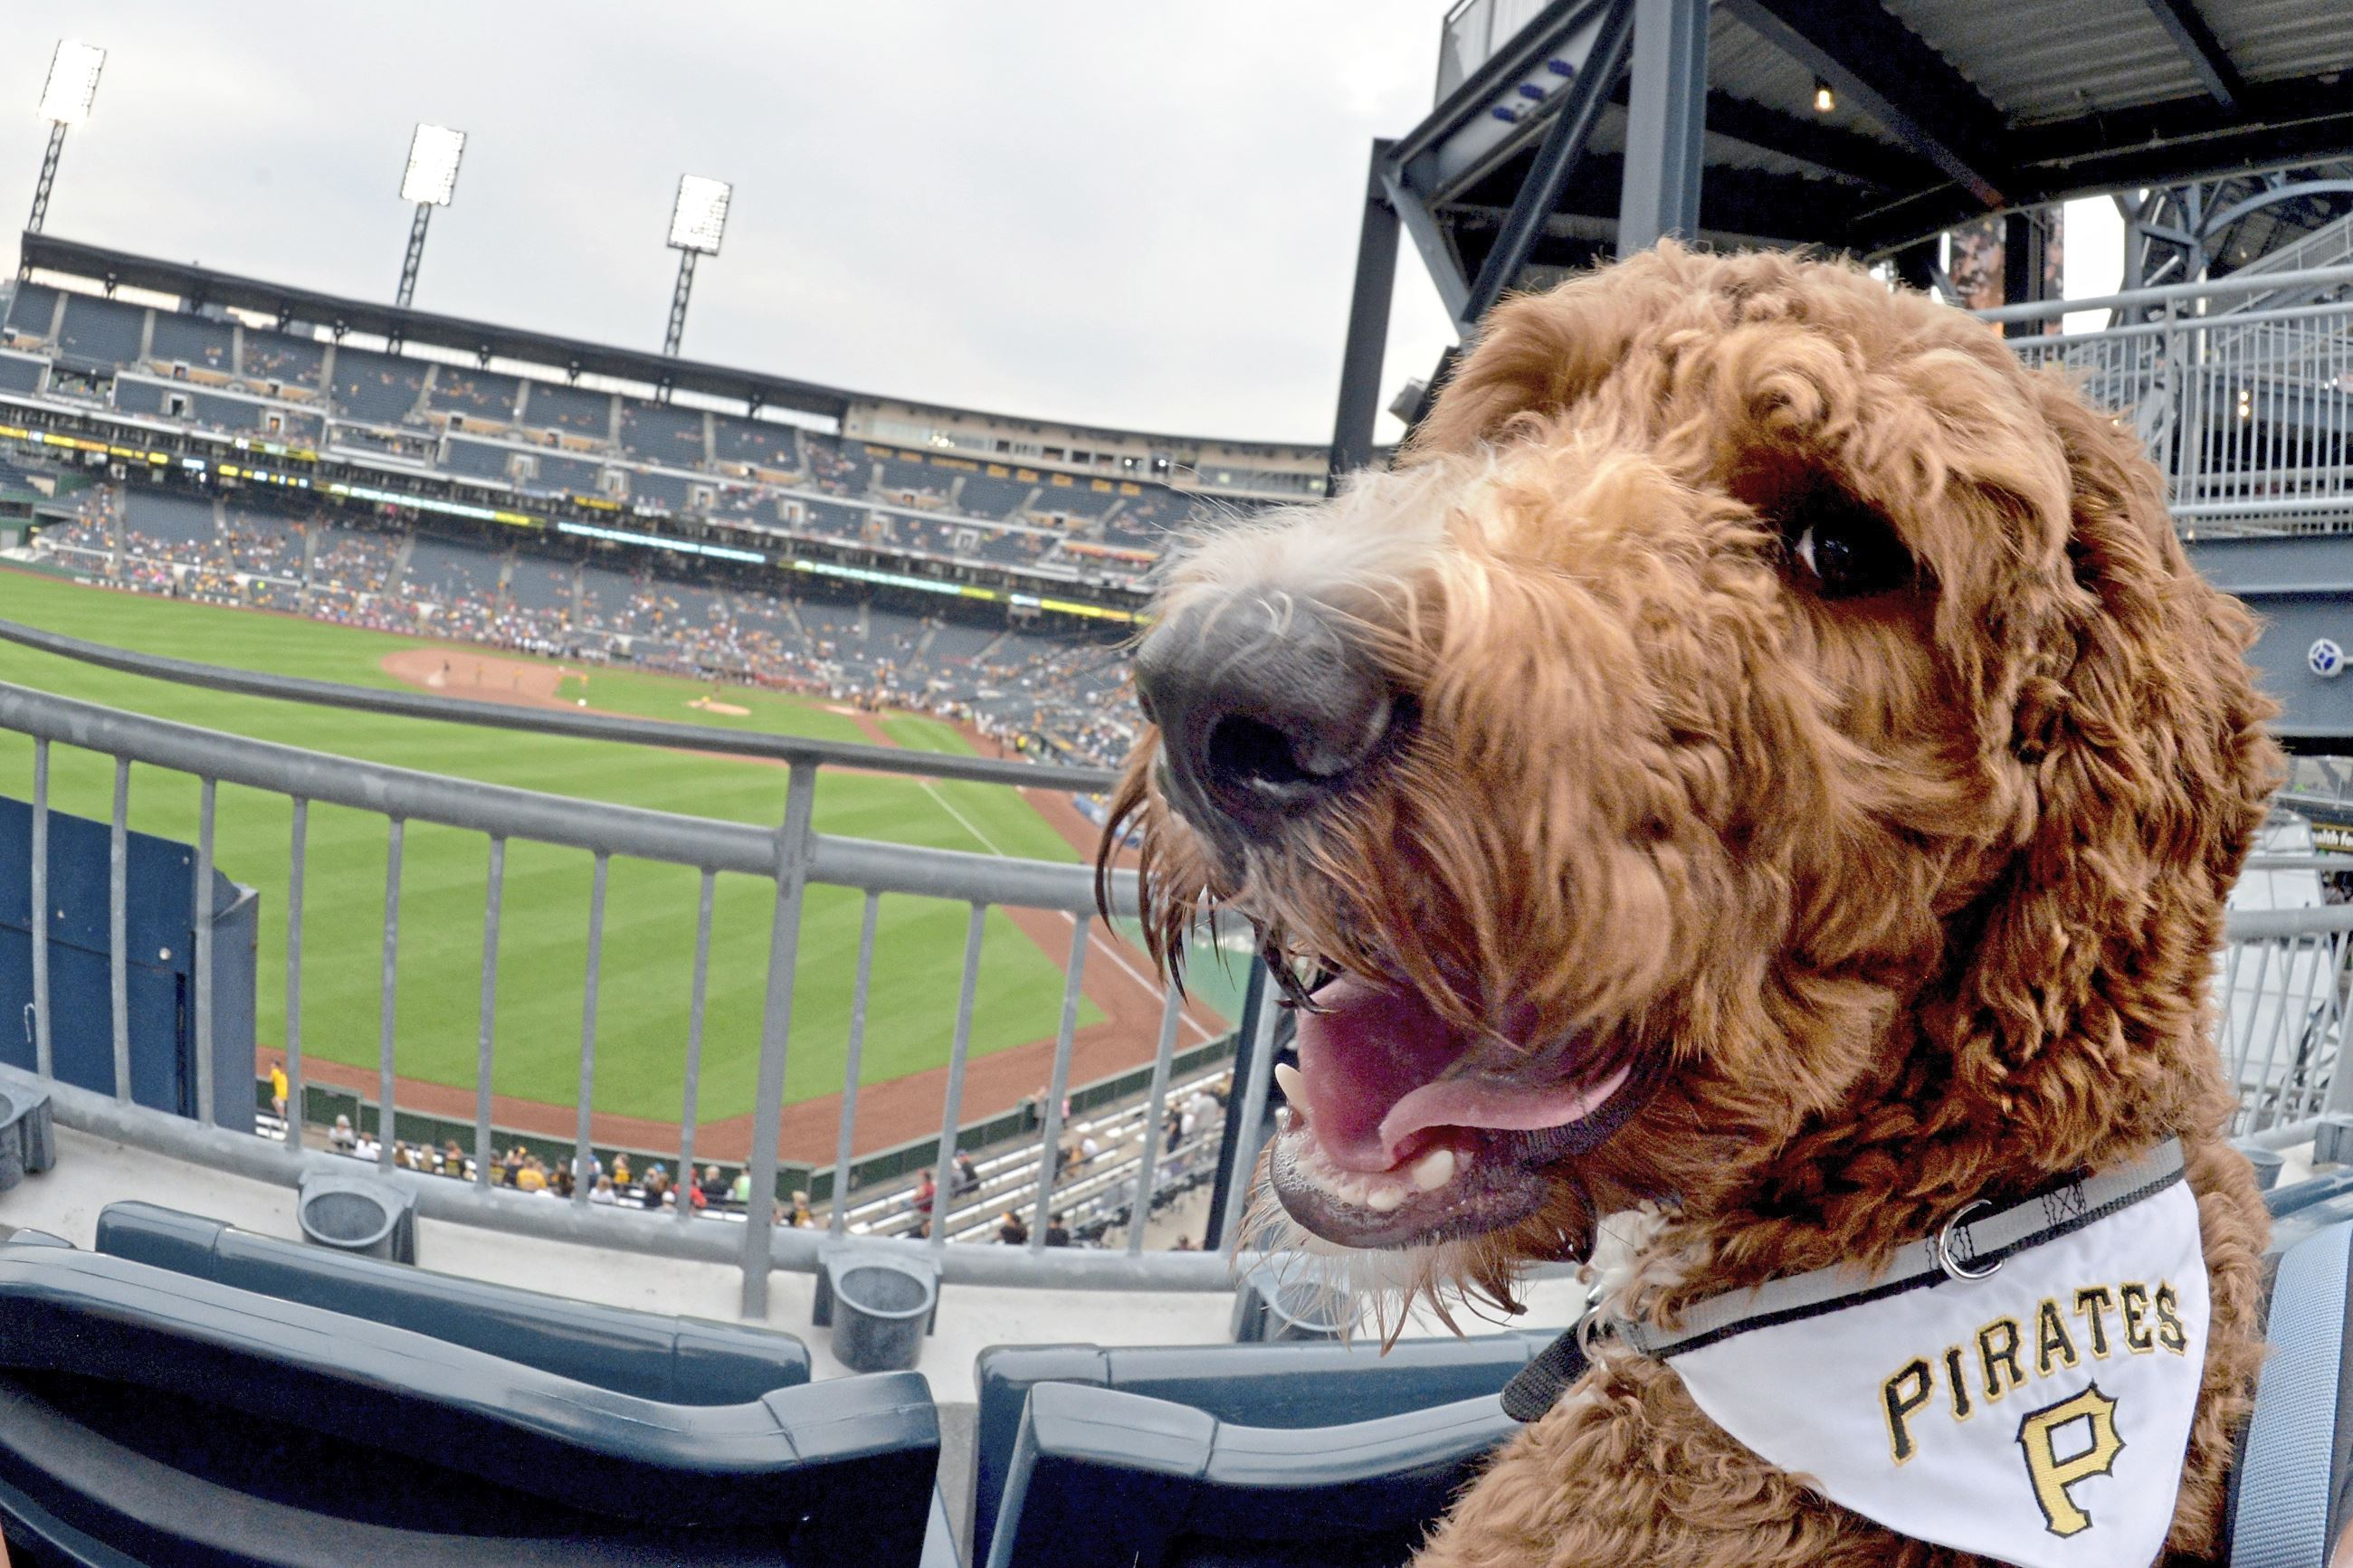 20170802mflocdogs03-2 Rooney Aurthur, a Virginia goldendoodle, attends Pup Night at PNC Park earlier this month. Pittsburgh comes in at No. 47 on the list pet-friendly cities, according to a ranking by WalletHub.